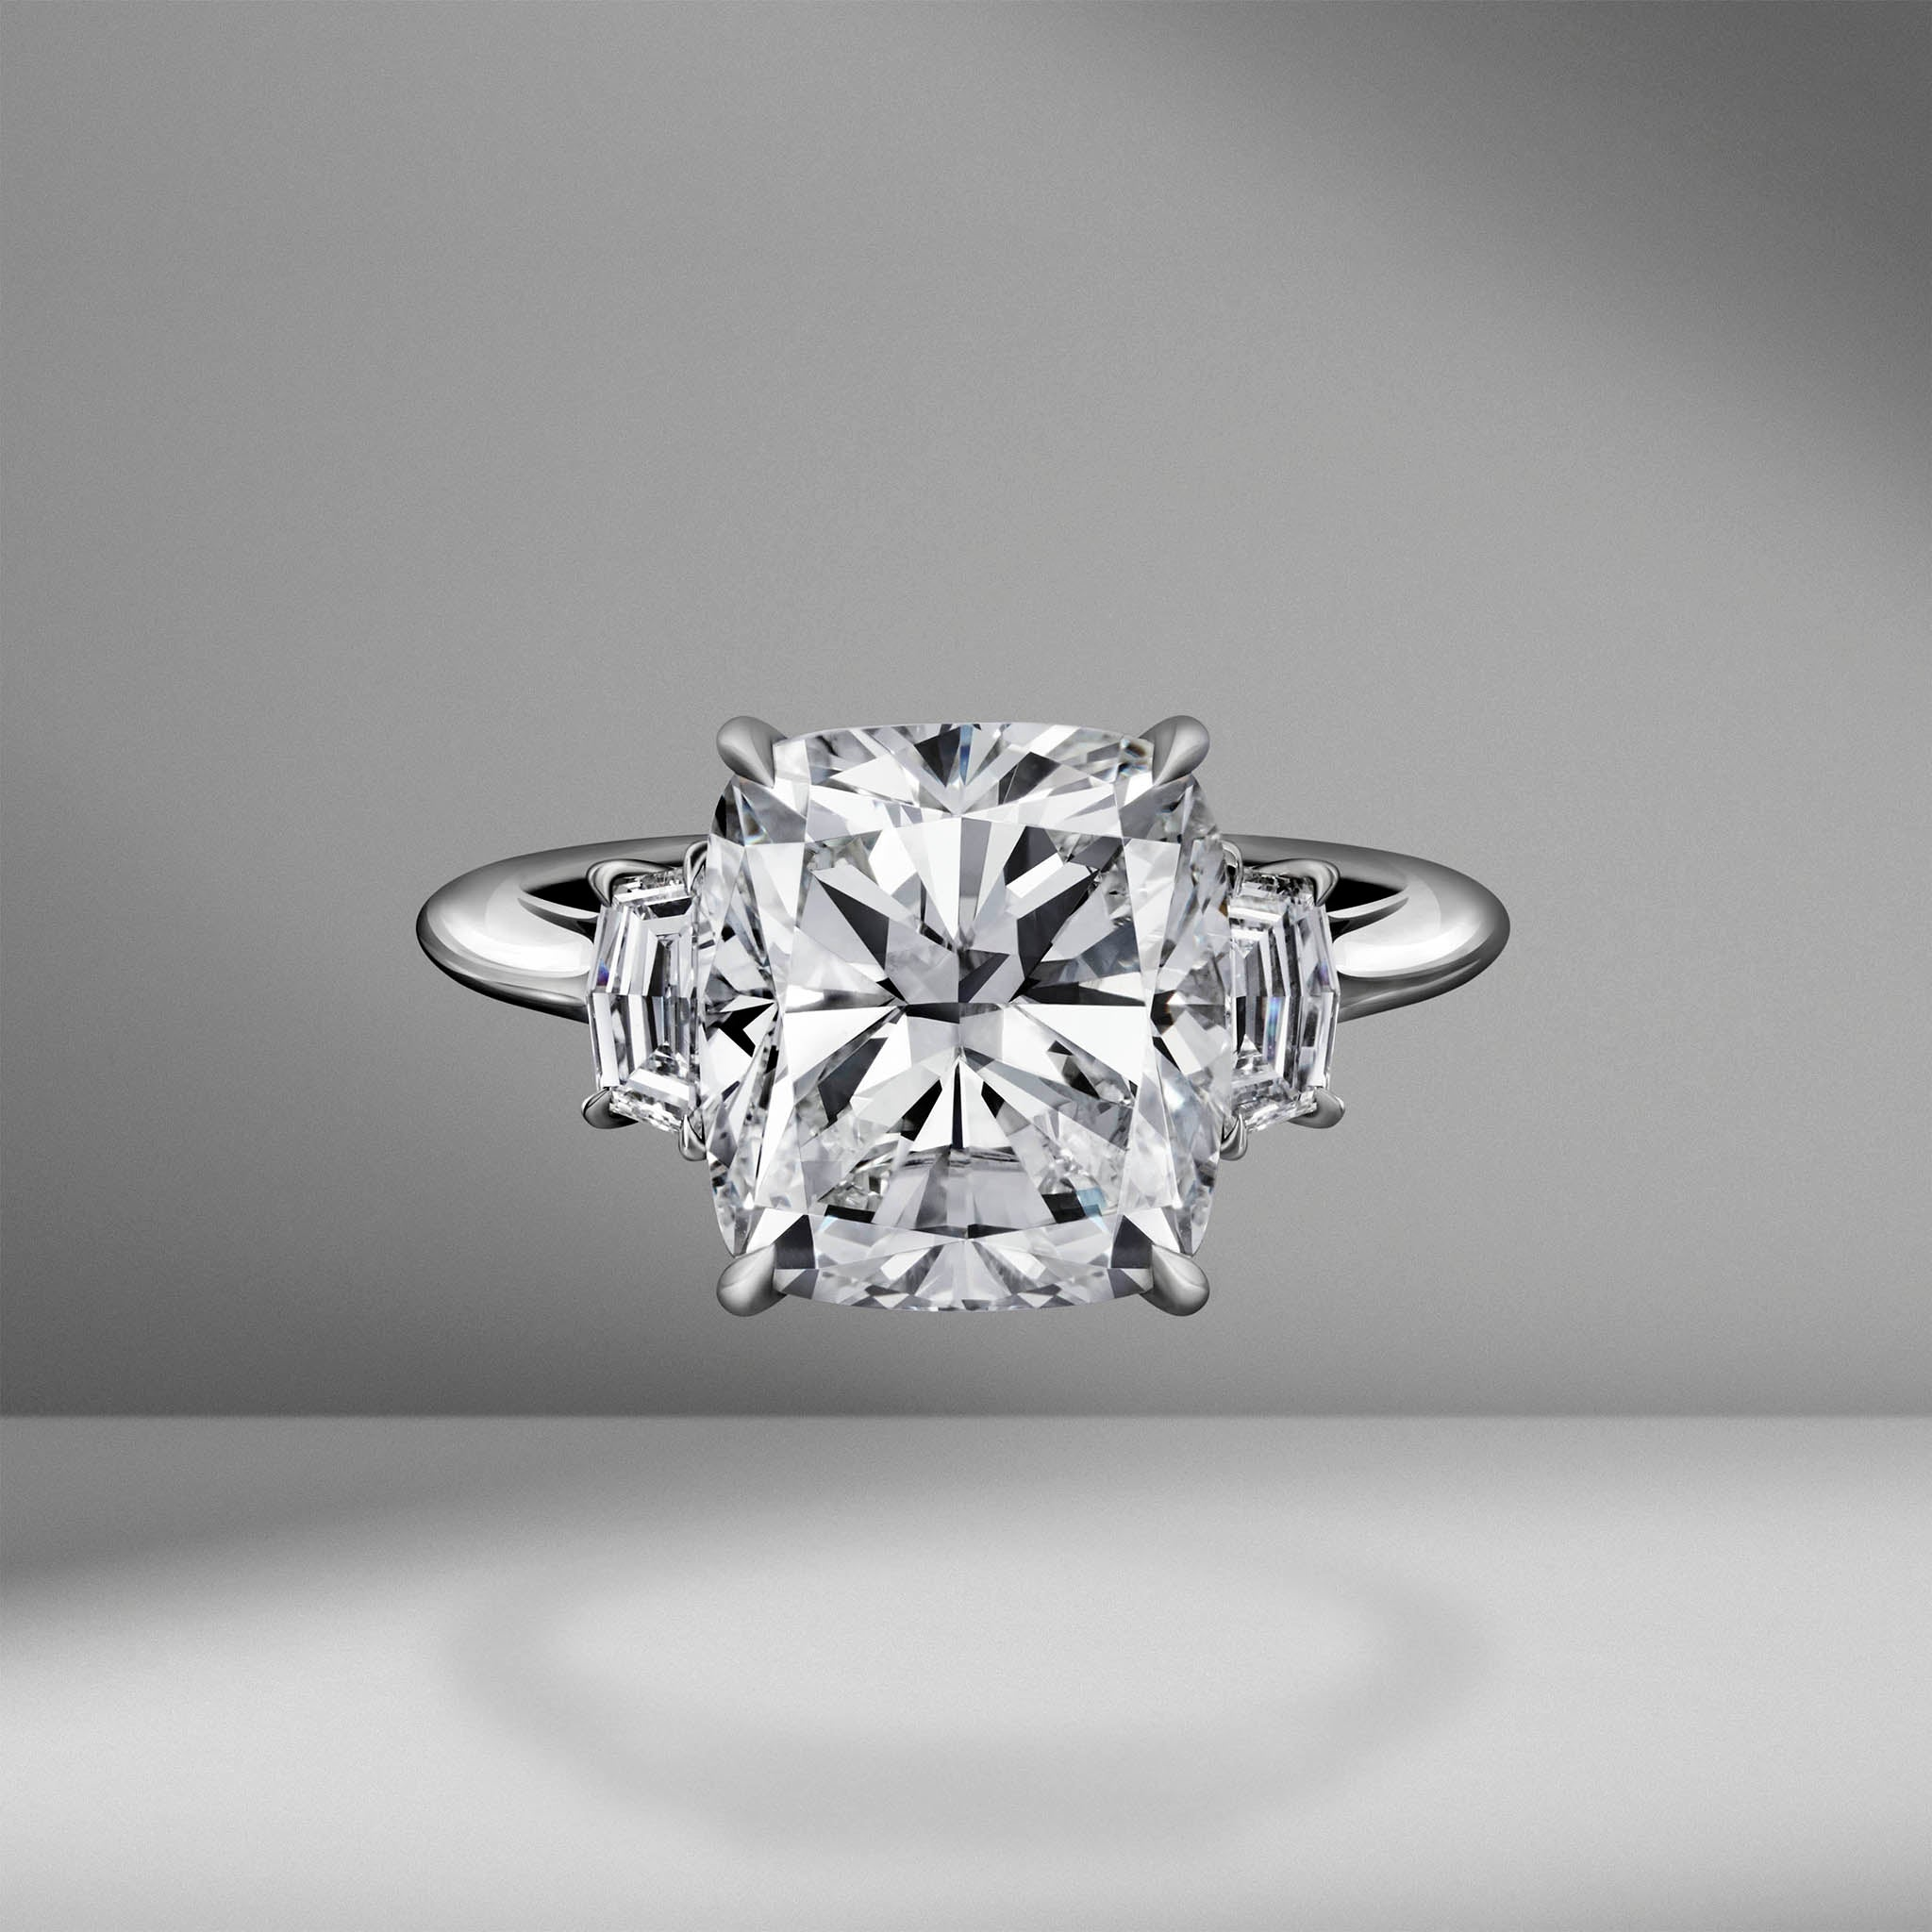 Cushion Cut Engagement Ring with Cadillac Cut Diamonds